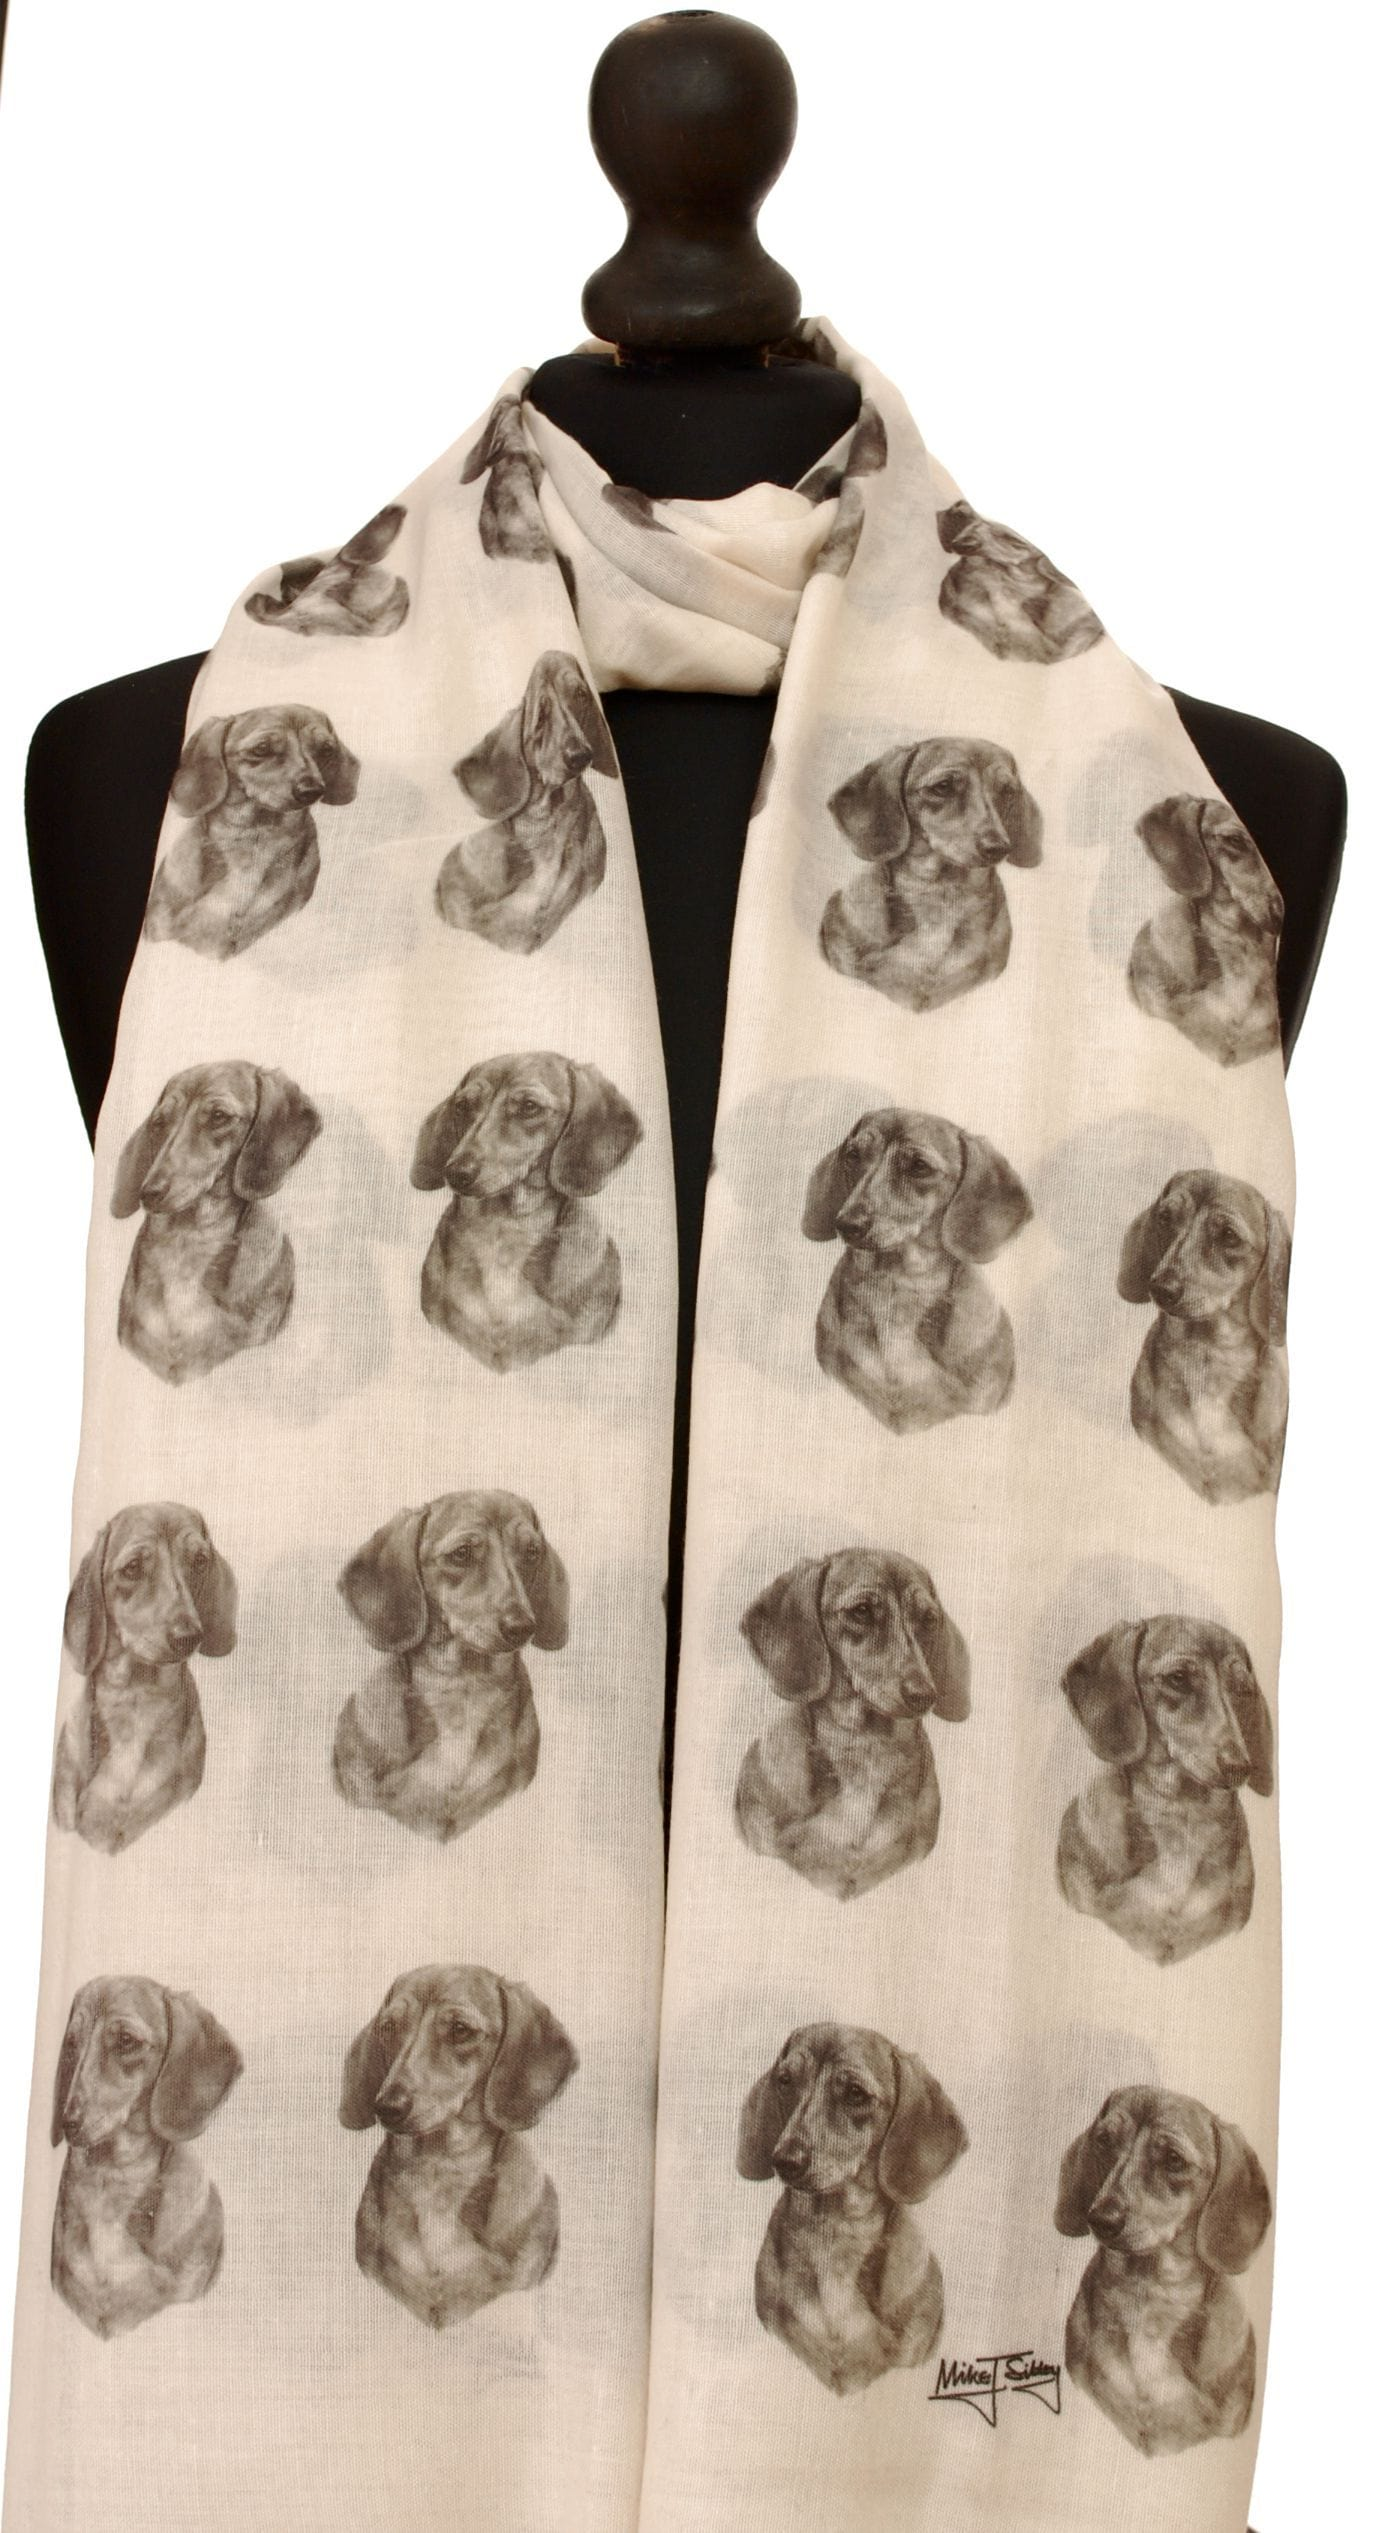 Smooth Haired Dachshund Scarf - Mike Sibley Dachshund design Ladies Fashion Scarf – Hand Printed in the UK